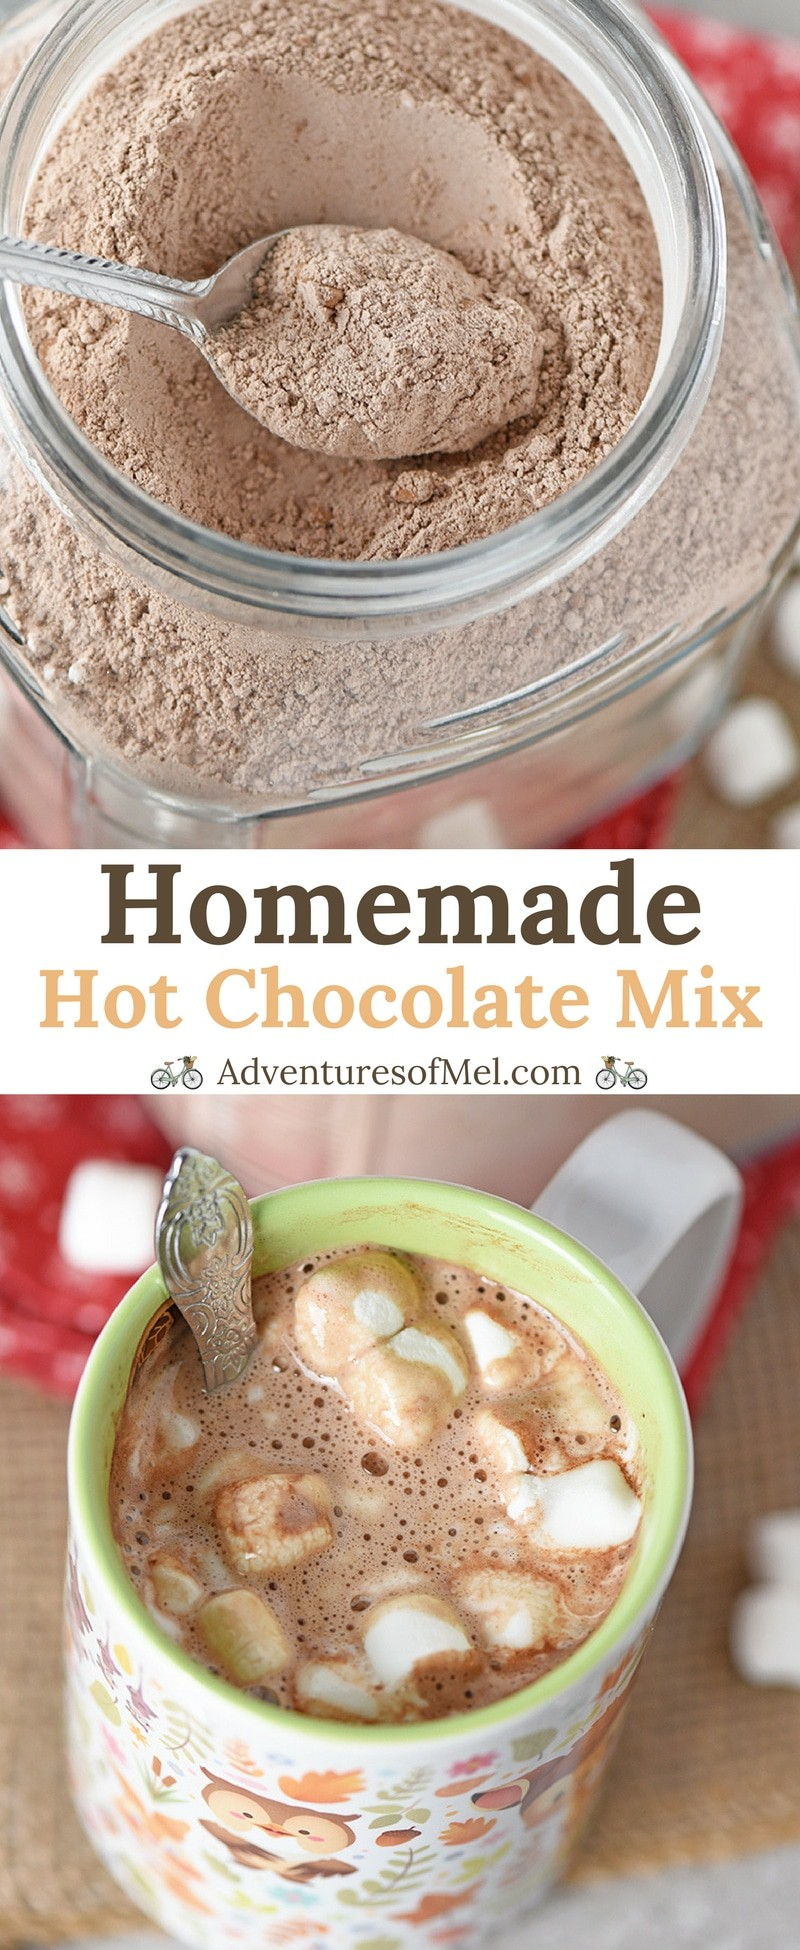 Homemade Hot Chocolate Mix makes a rich, creamy cup of delicious hot cocoa. Easy to make in about 5 minutes and makes a yummy gift idea!